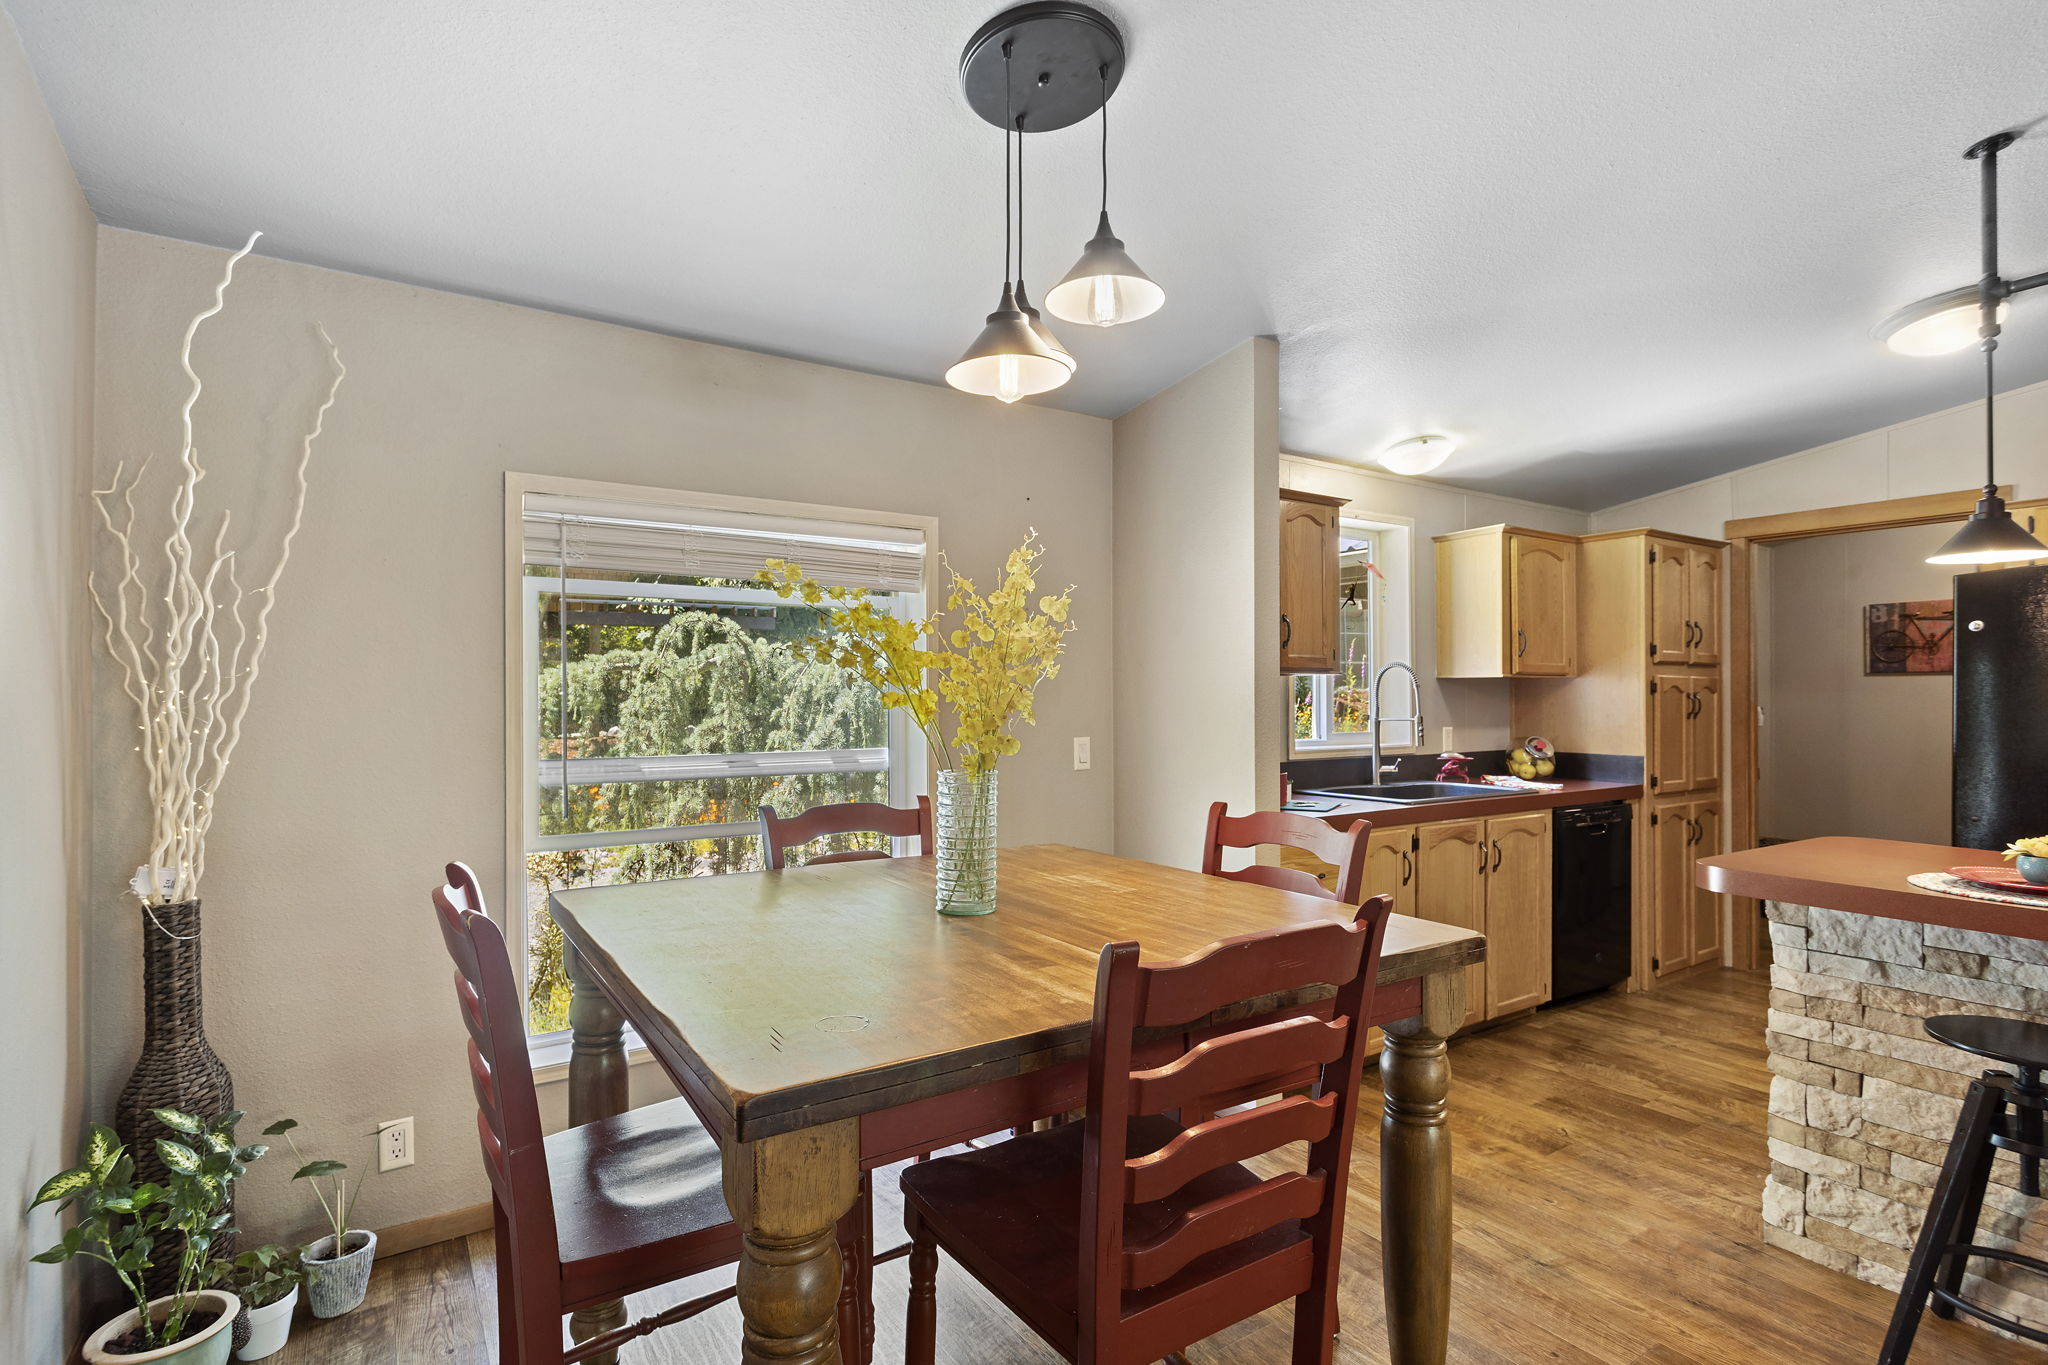 Large dining room area off of kitchen and living room make for easy entertaining